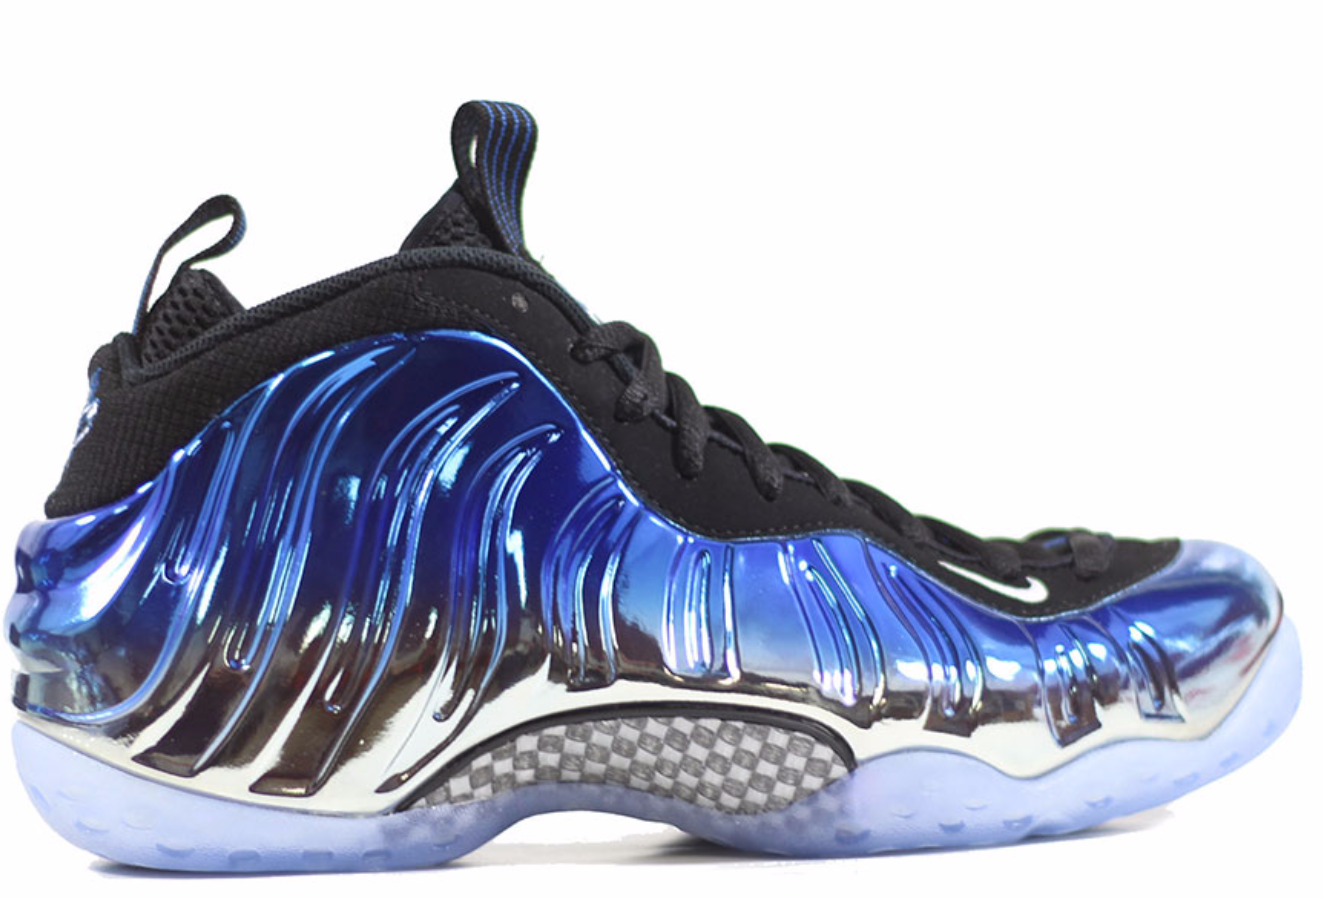 huge selection of fd3ec 7e7a7 ... Sold Out Nike foamposite blue mirror  575420-008